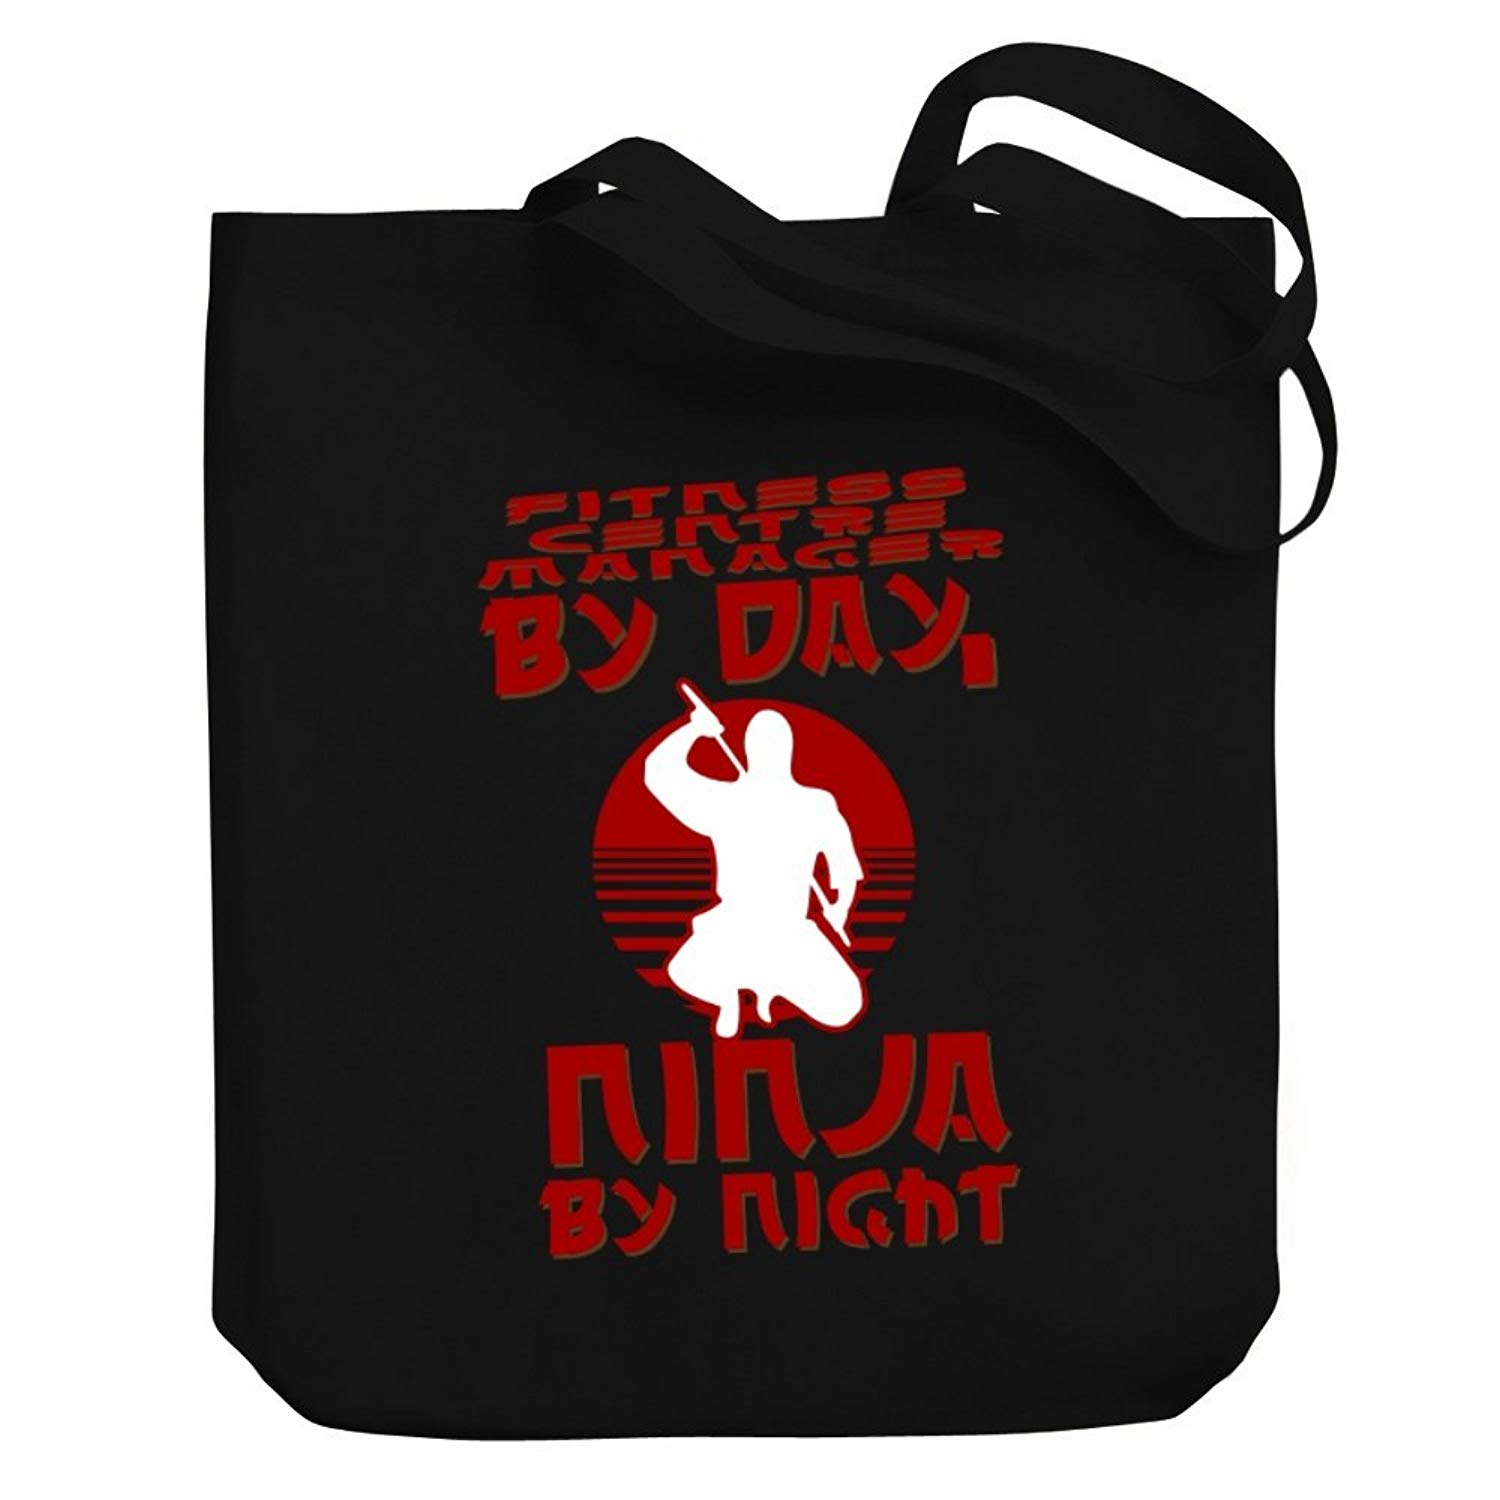 Teeburon Fitness Centre Manager by day, ninja by night Canvas Tote Bag